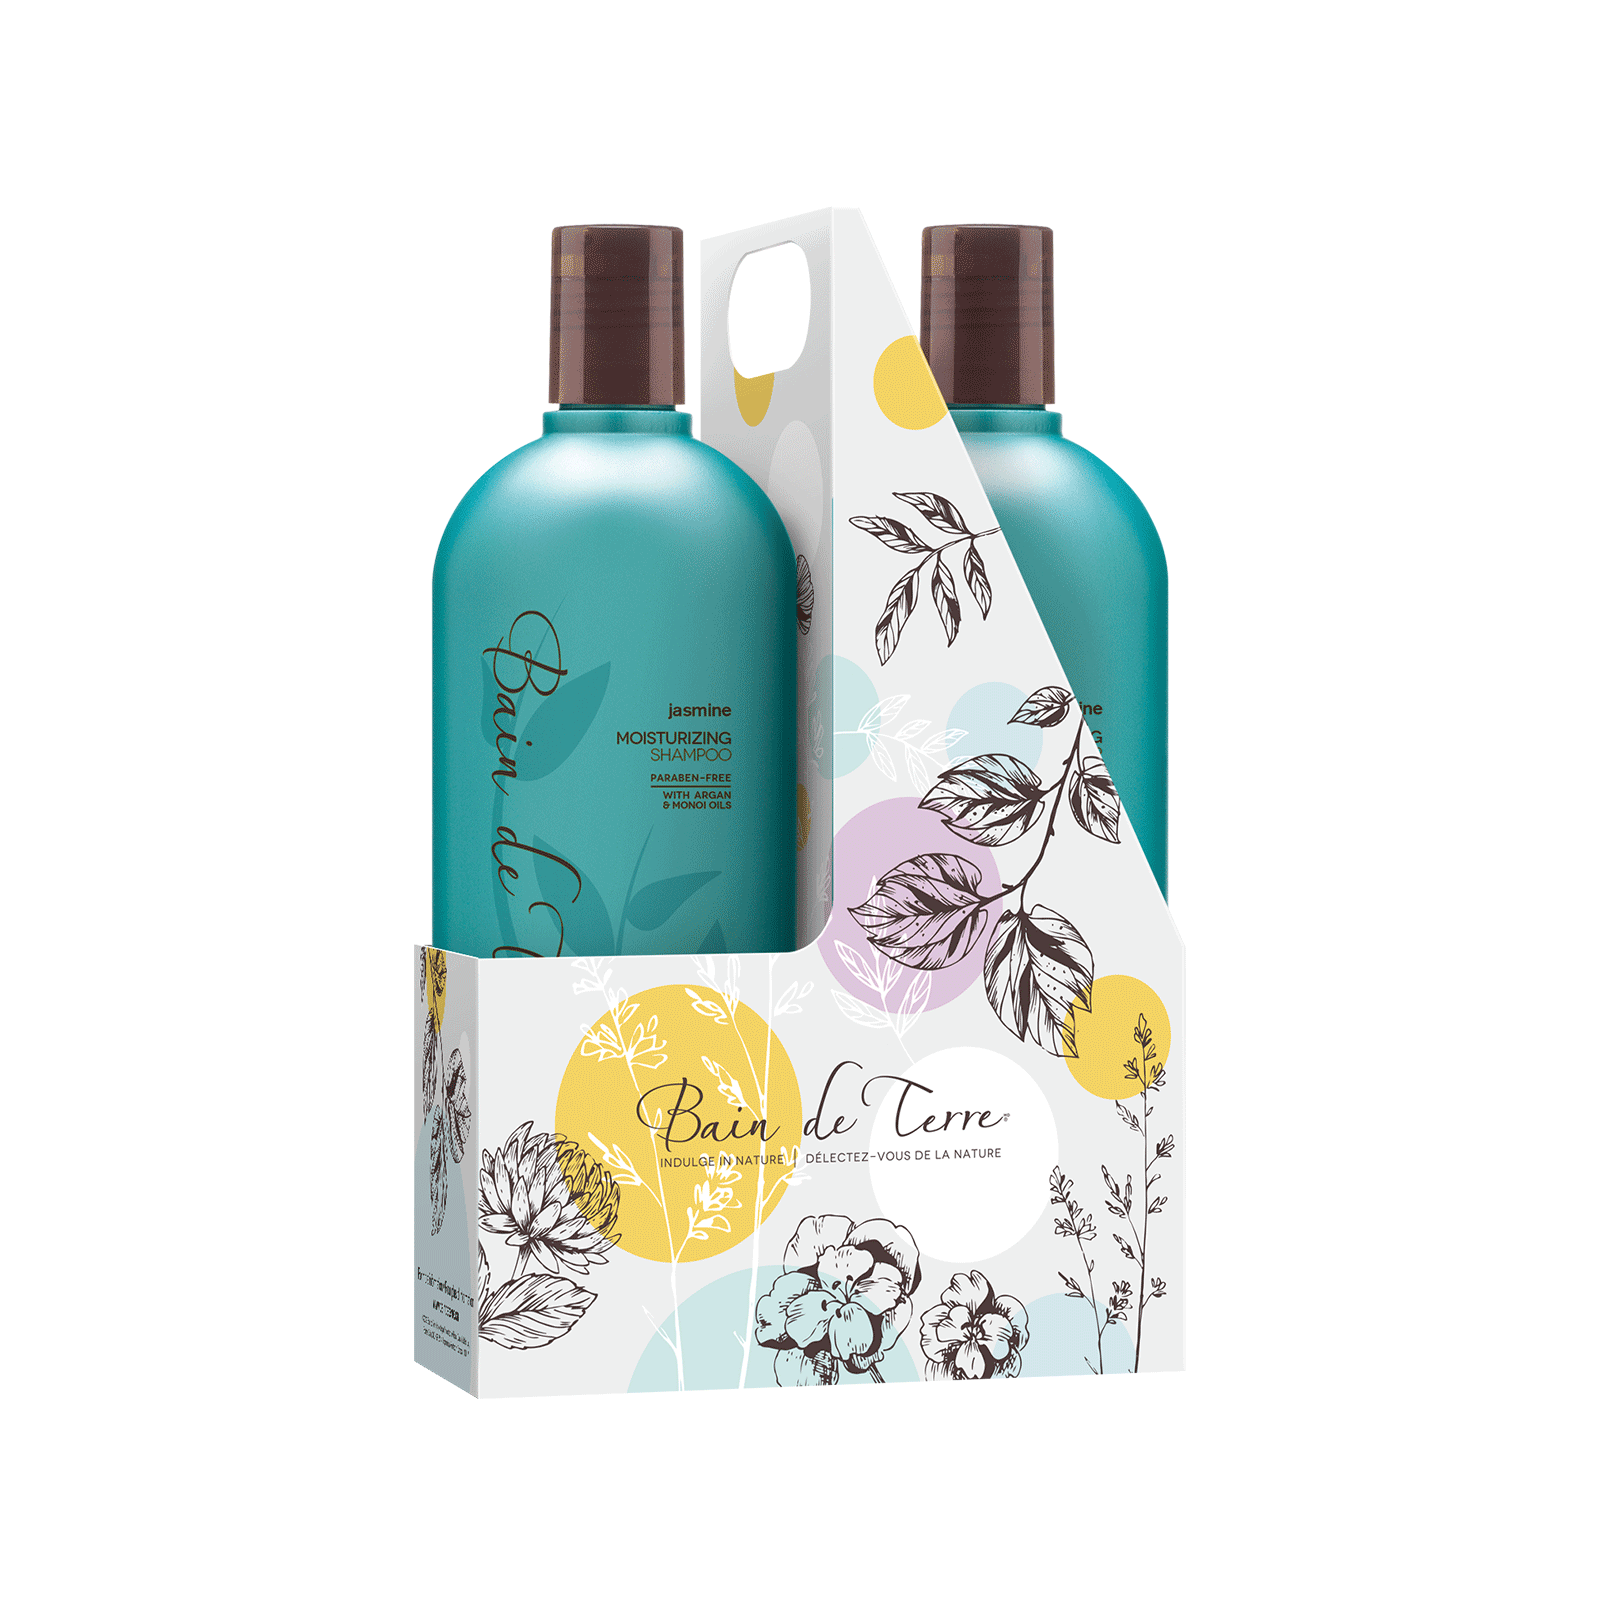 Jasmin Shampoo, Conditioner Liter Duo